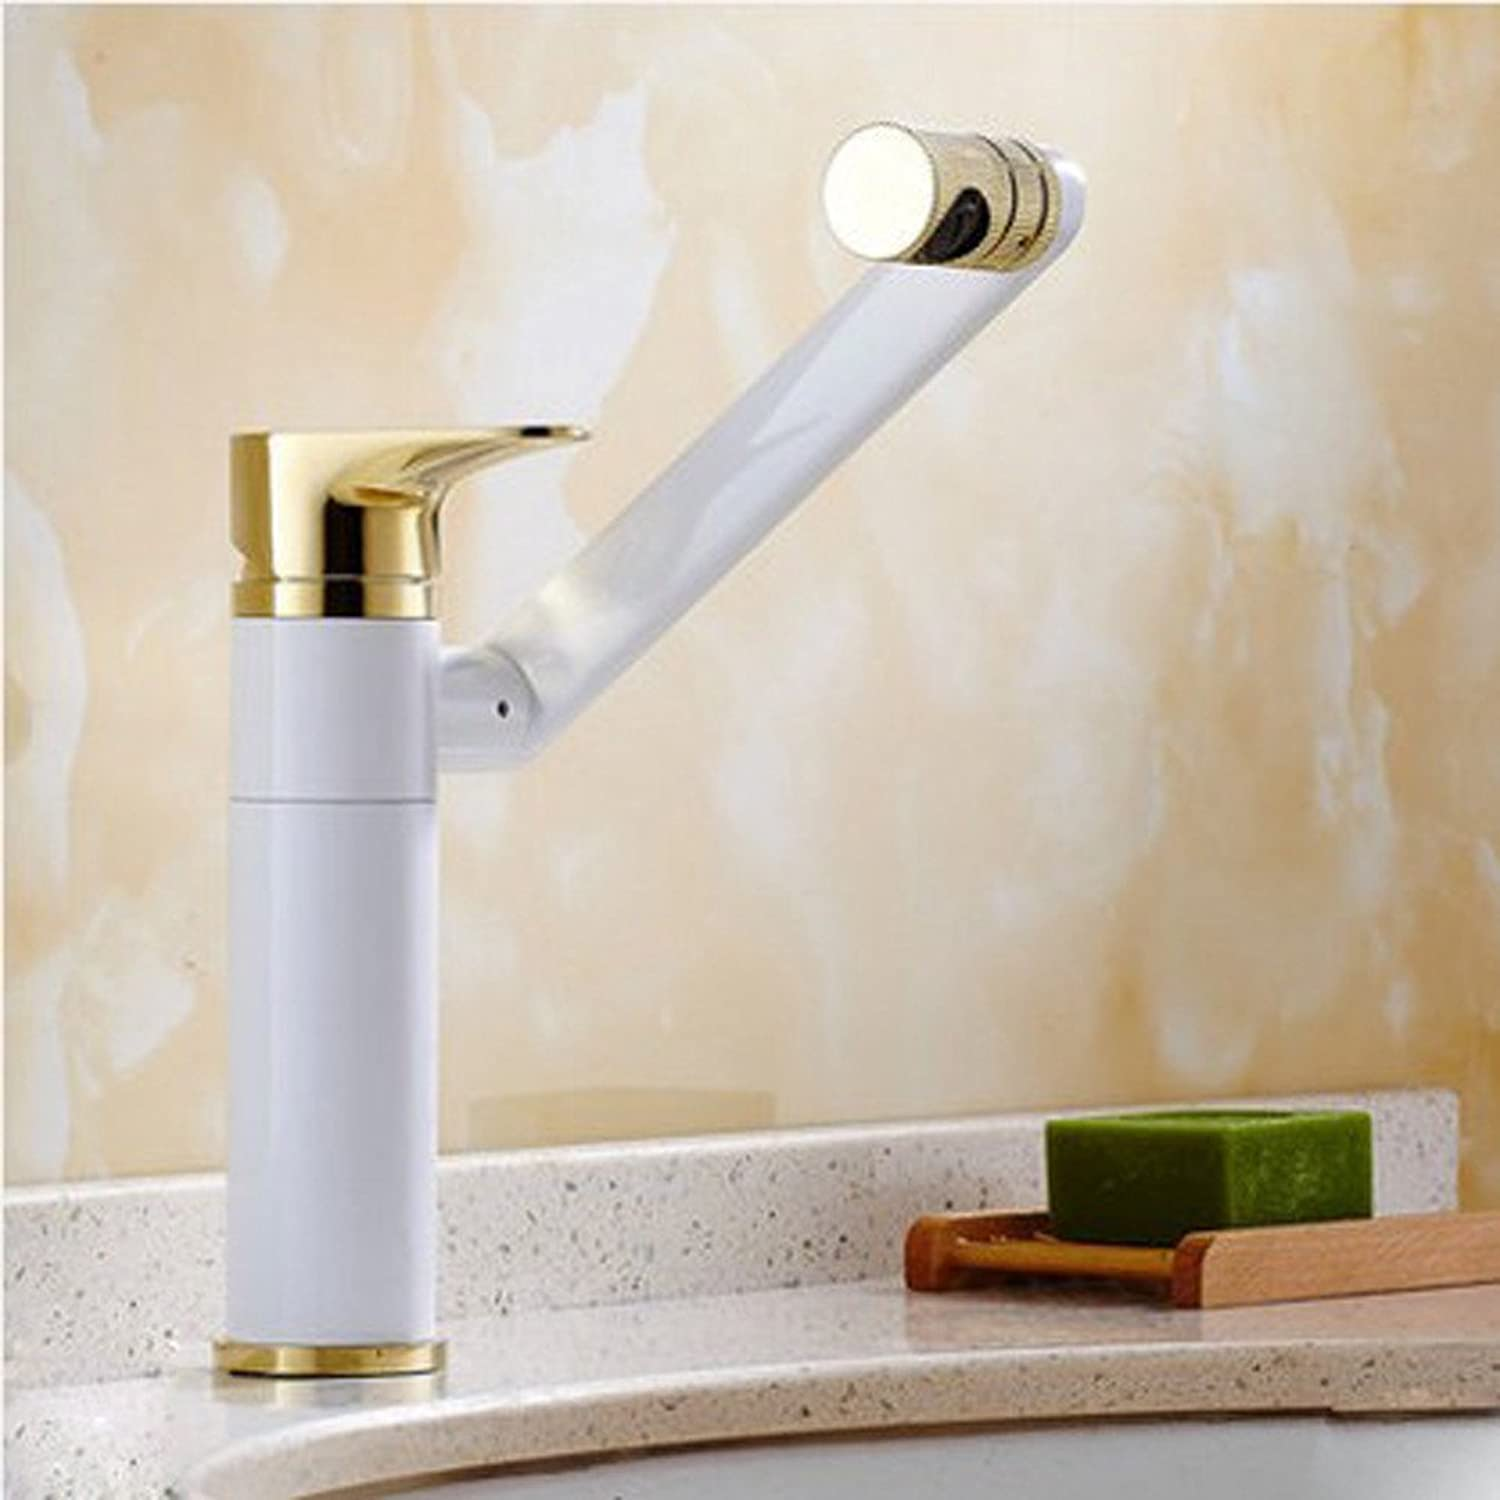 Olici Bathroom Accessories Basin Tap Copper single hole mixing Taiwan basin faucet hot and cold lift and opening type redary faucet white